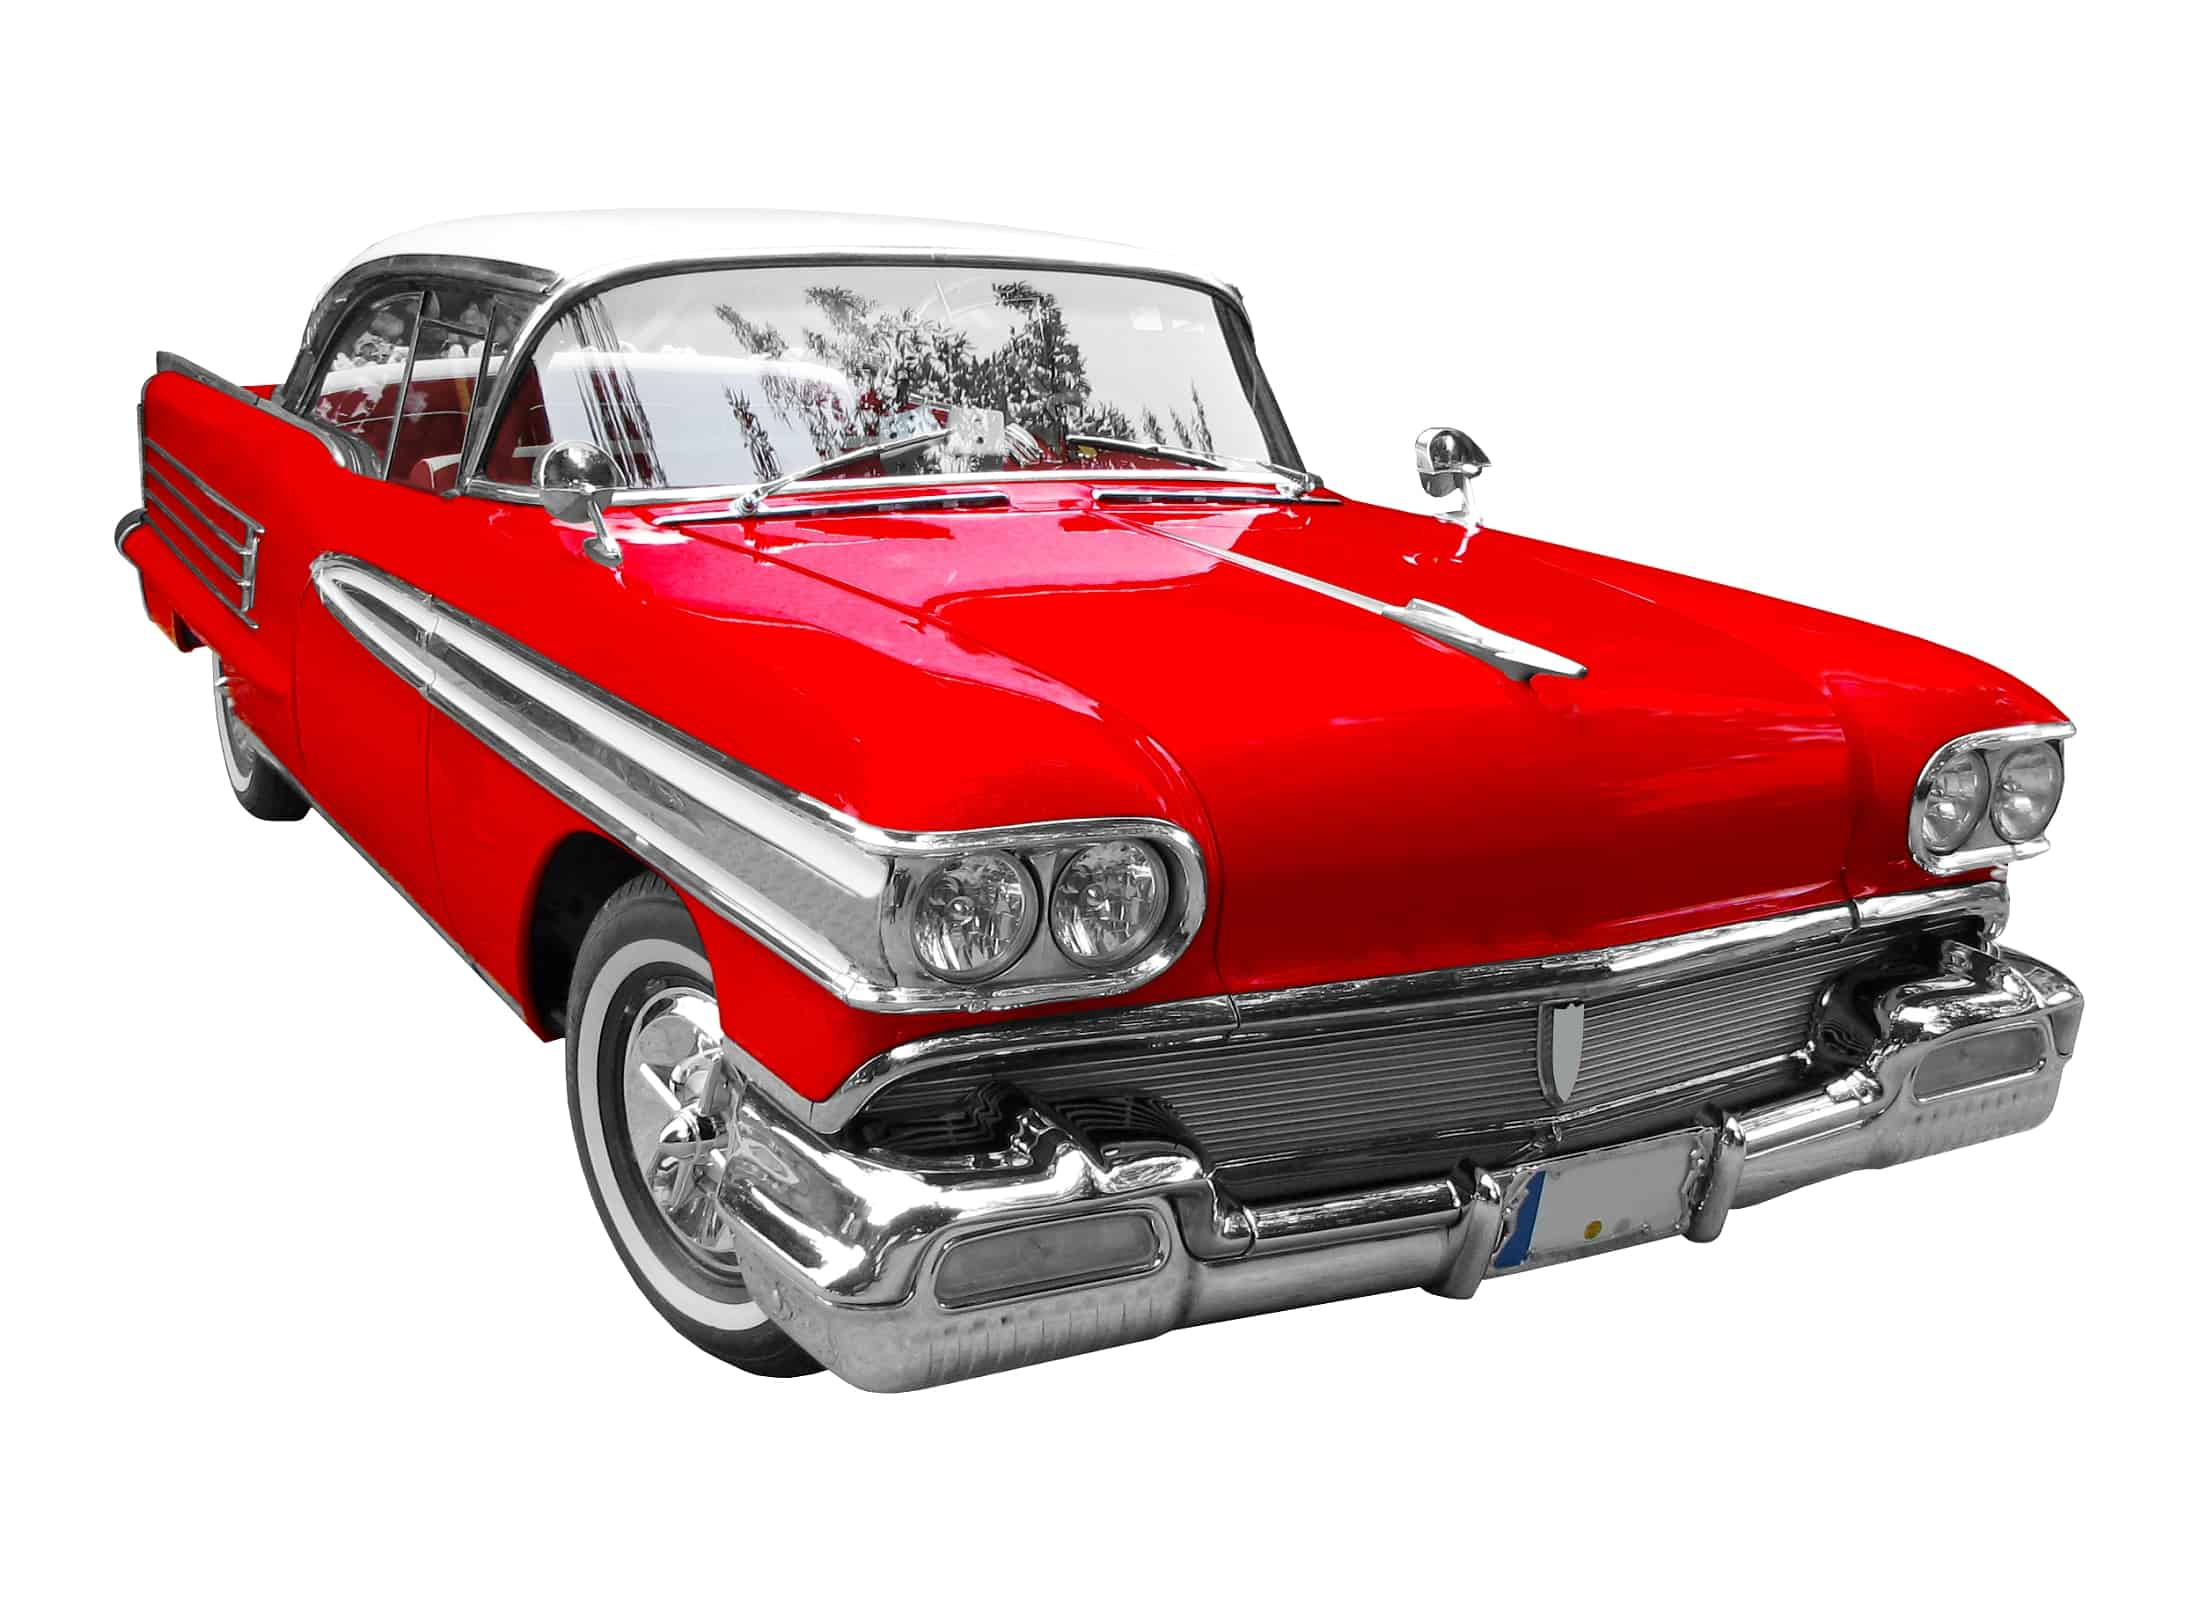 Windy City Classic Car Show Cruise October 27